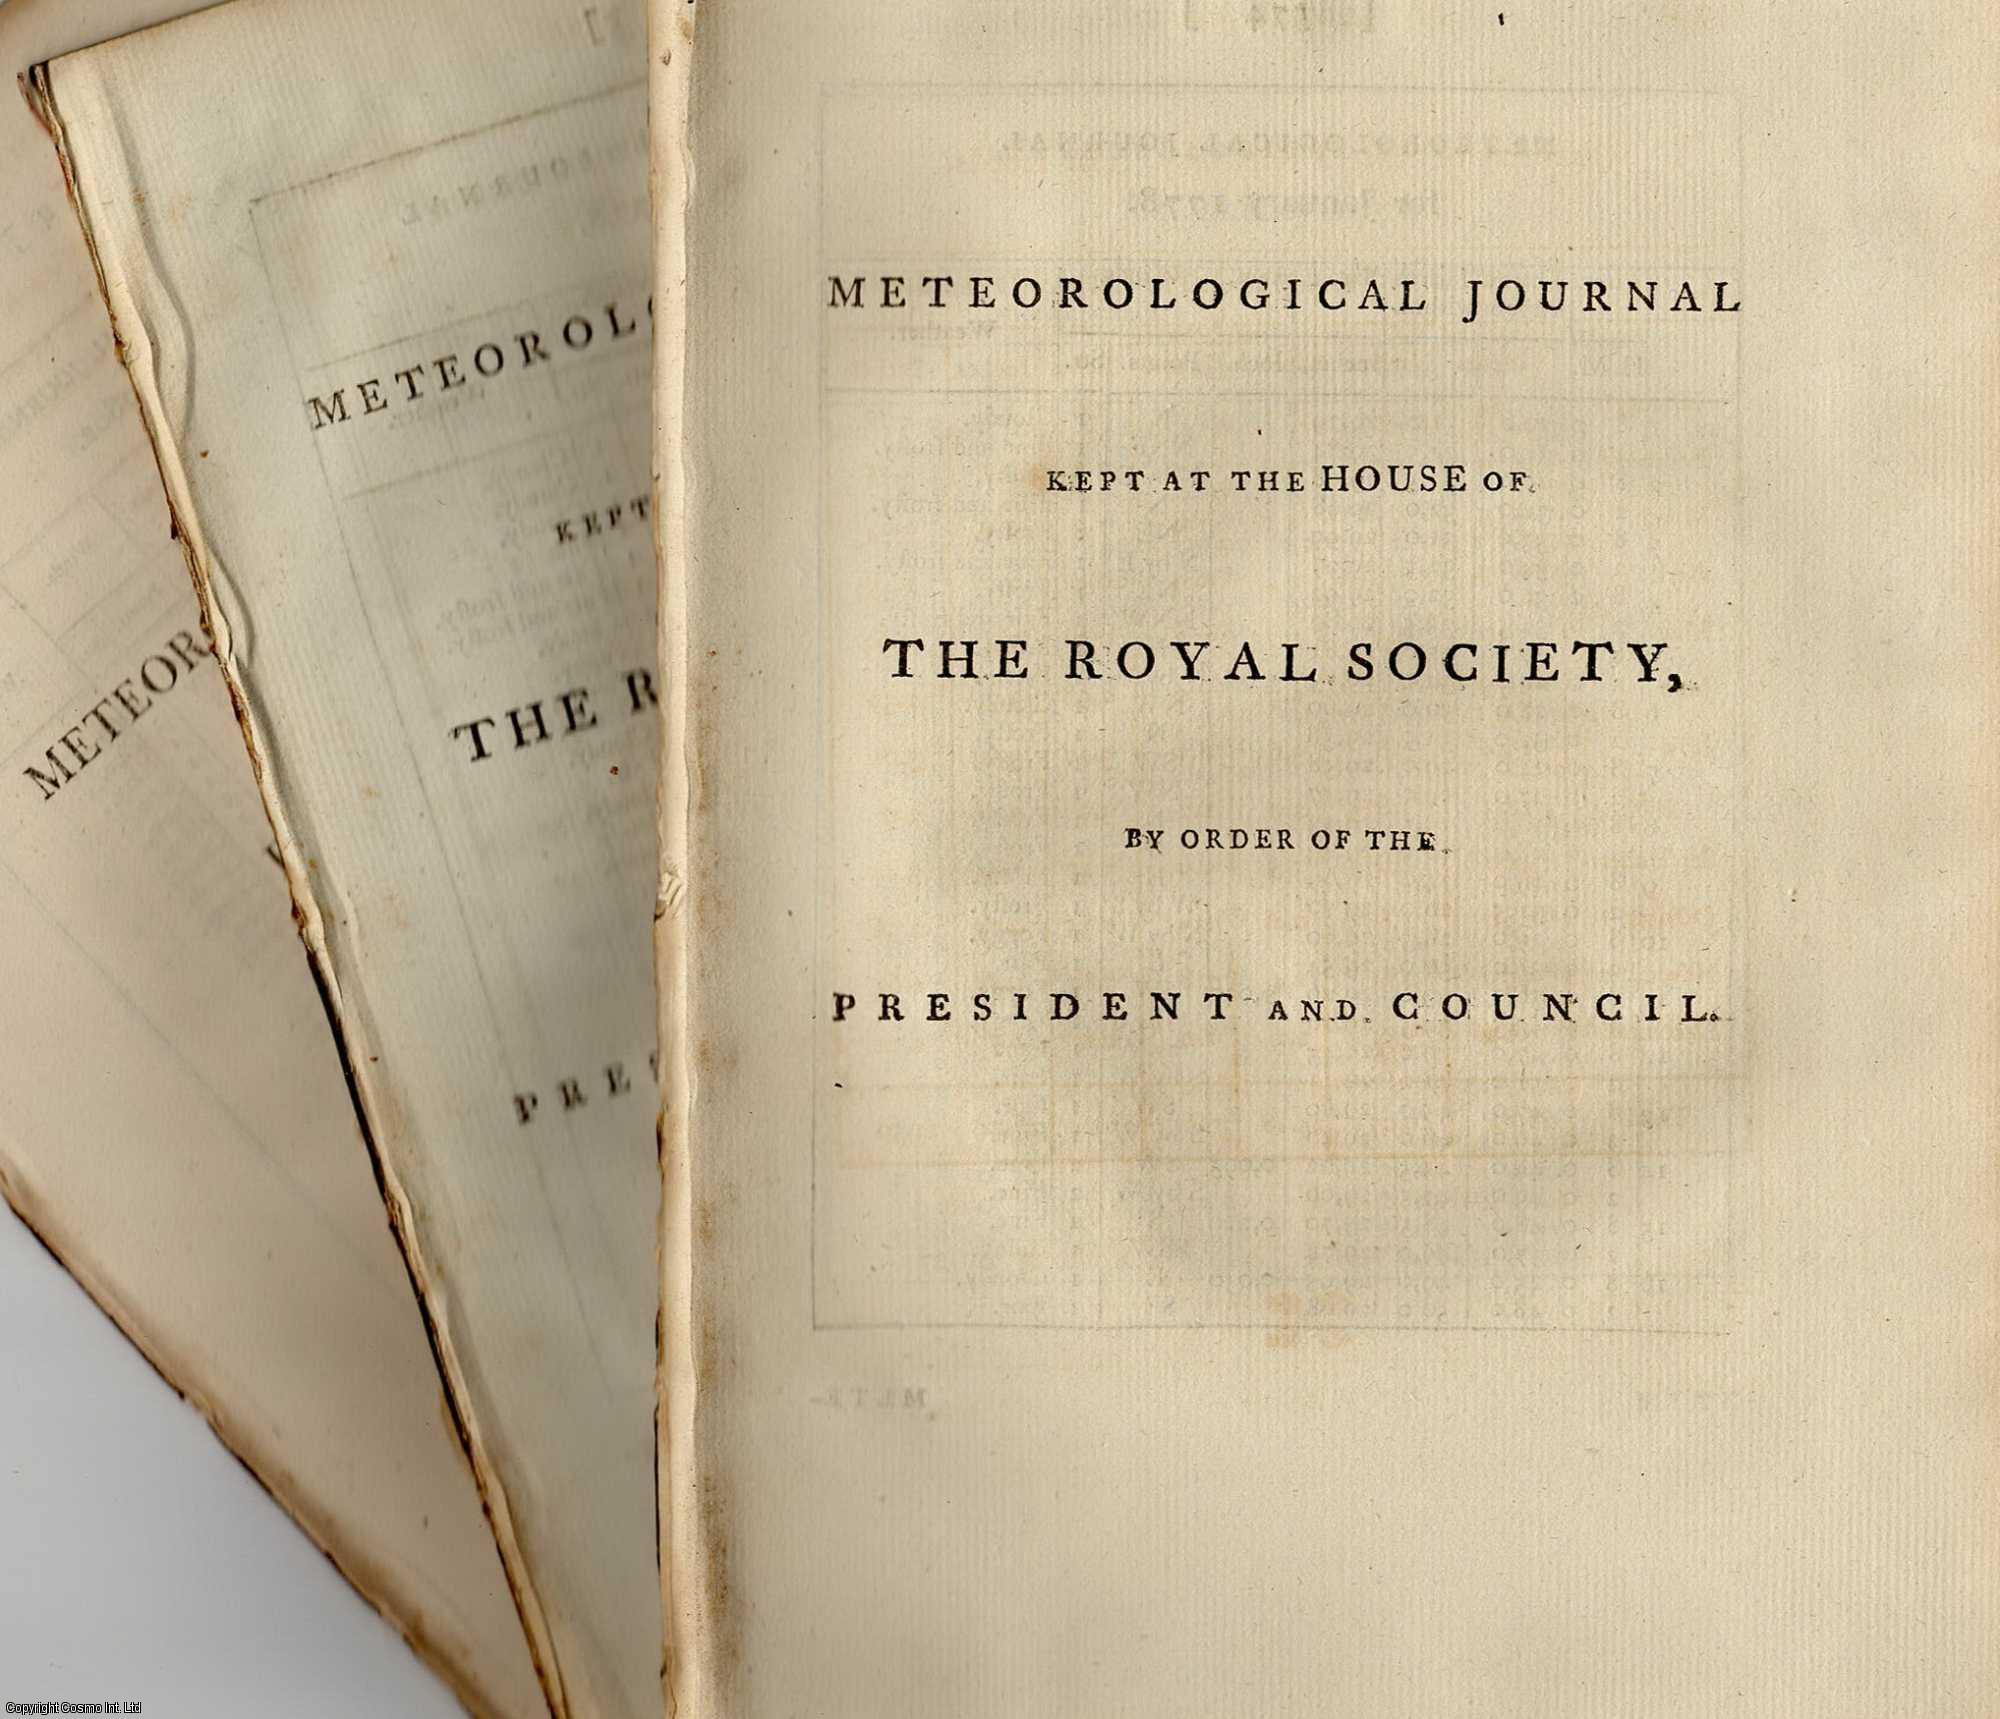 [ROYAL SOCIETY]. - The Meteorological Journal [Rainfall], Kept at the Apartments of the Royal Society. For the years c.1769 - c.1870. A rare original article from the Philosophical Transactions of the Royal Society, 1769.